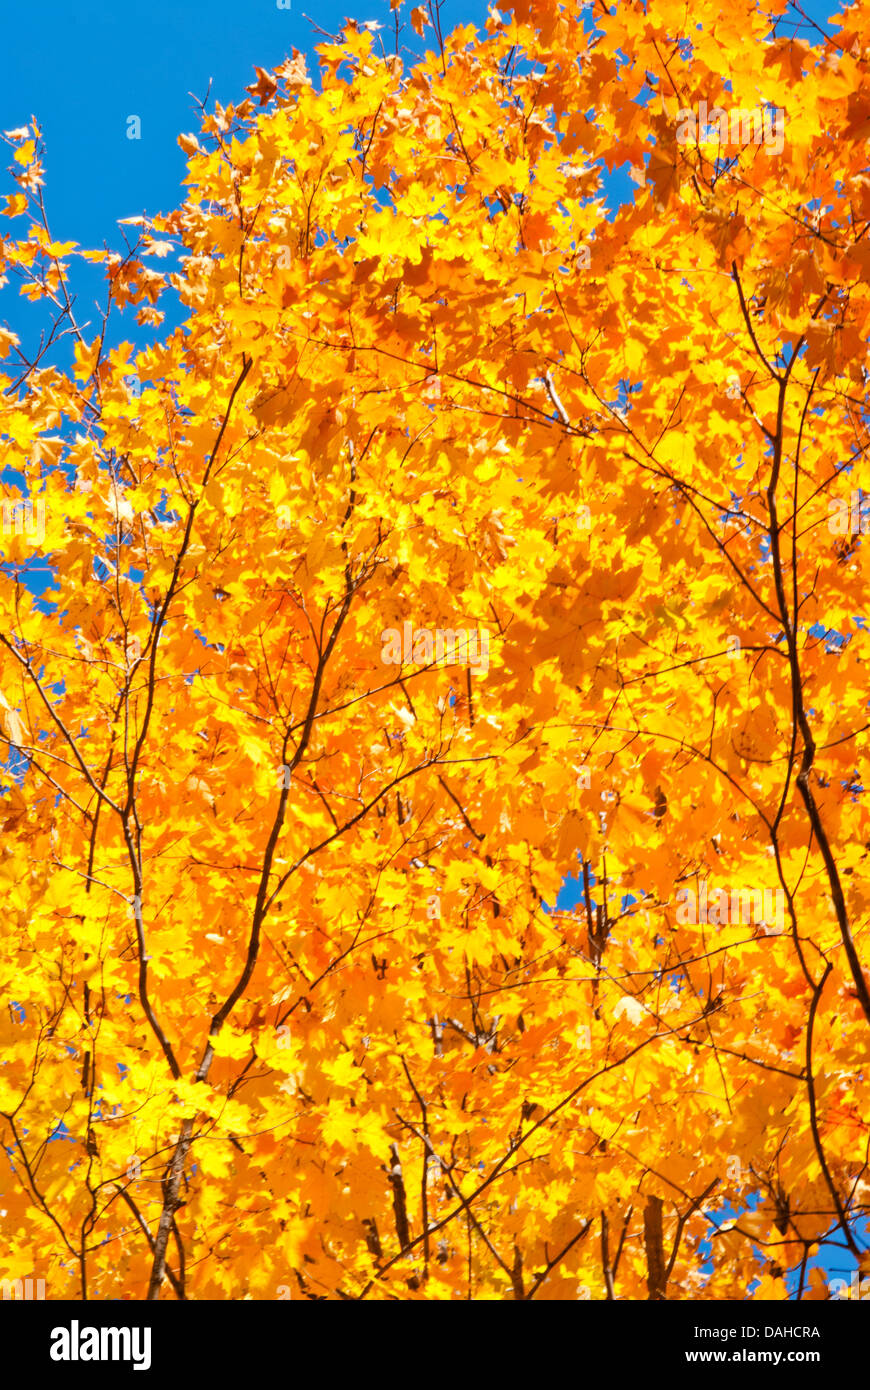 fall-maple-tree-leaves-against-a-deep-bl